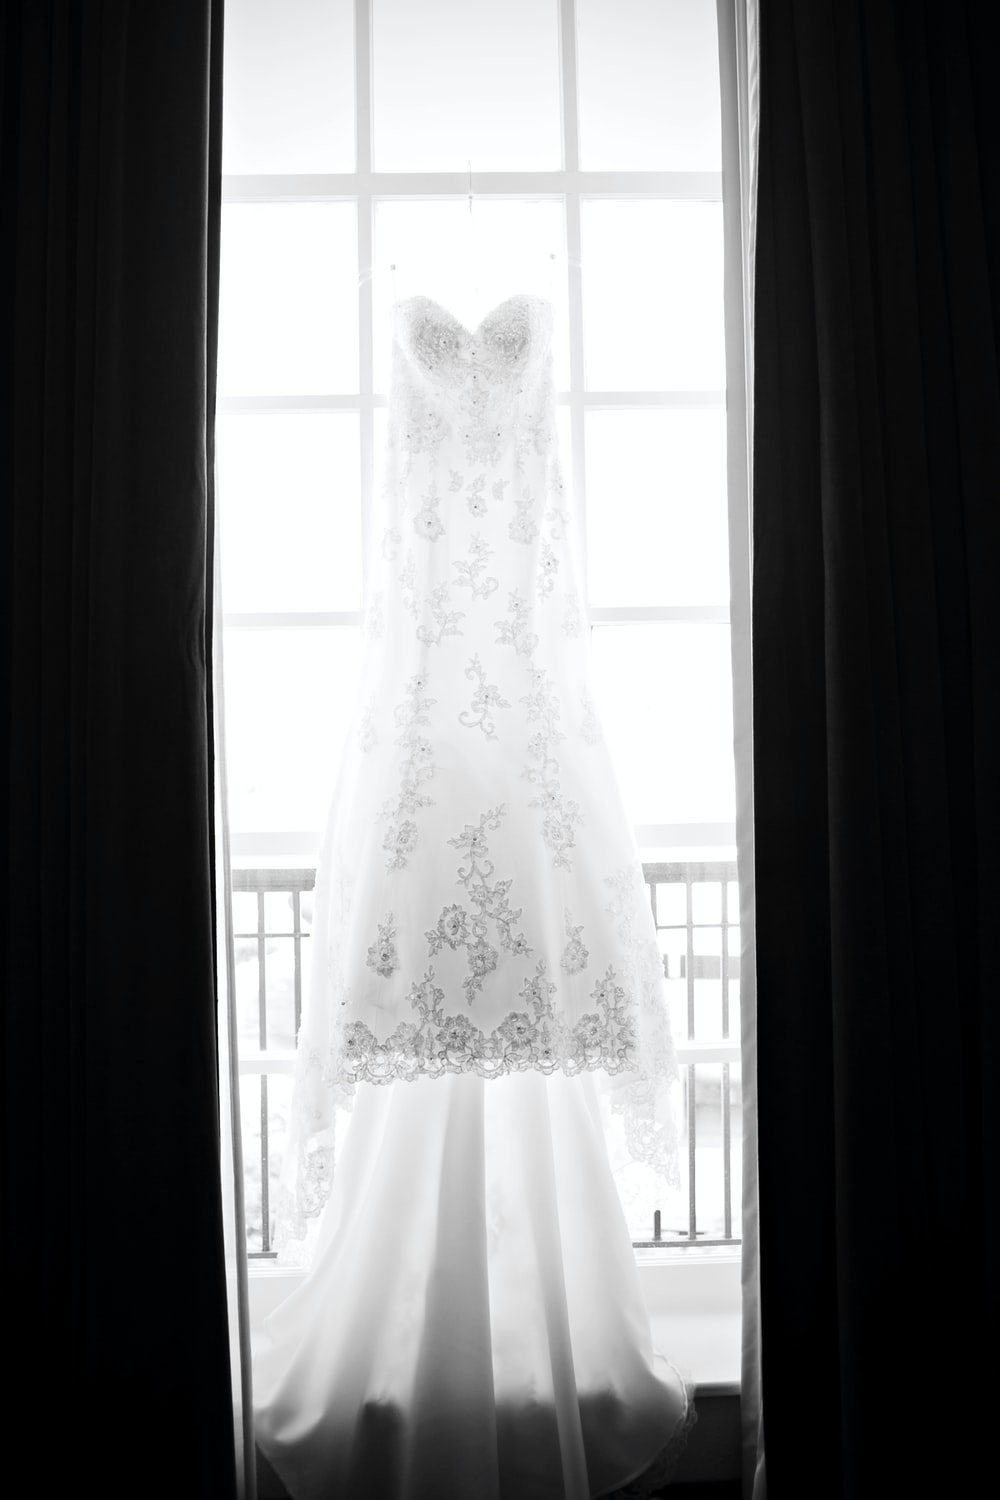 white floral wedding gown beside window